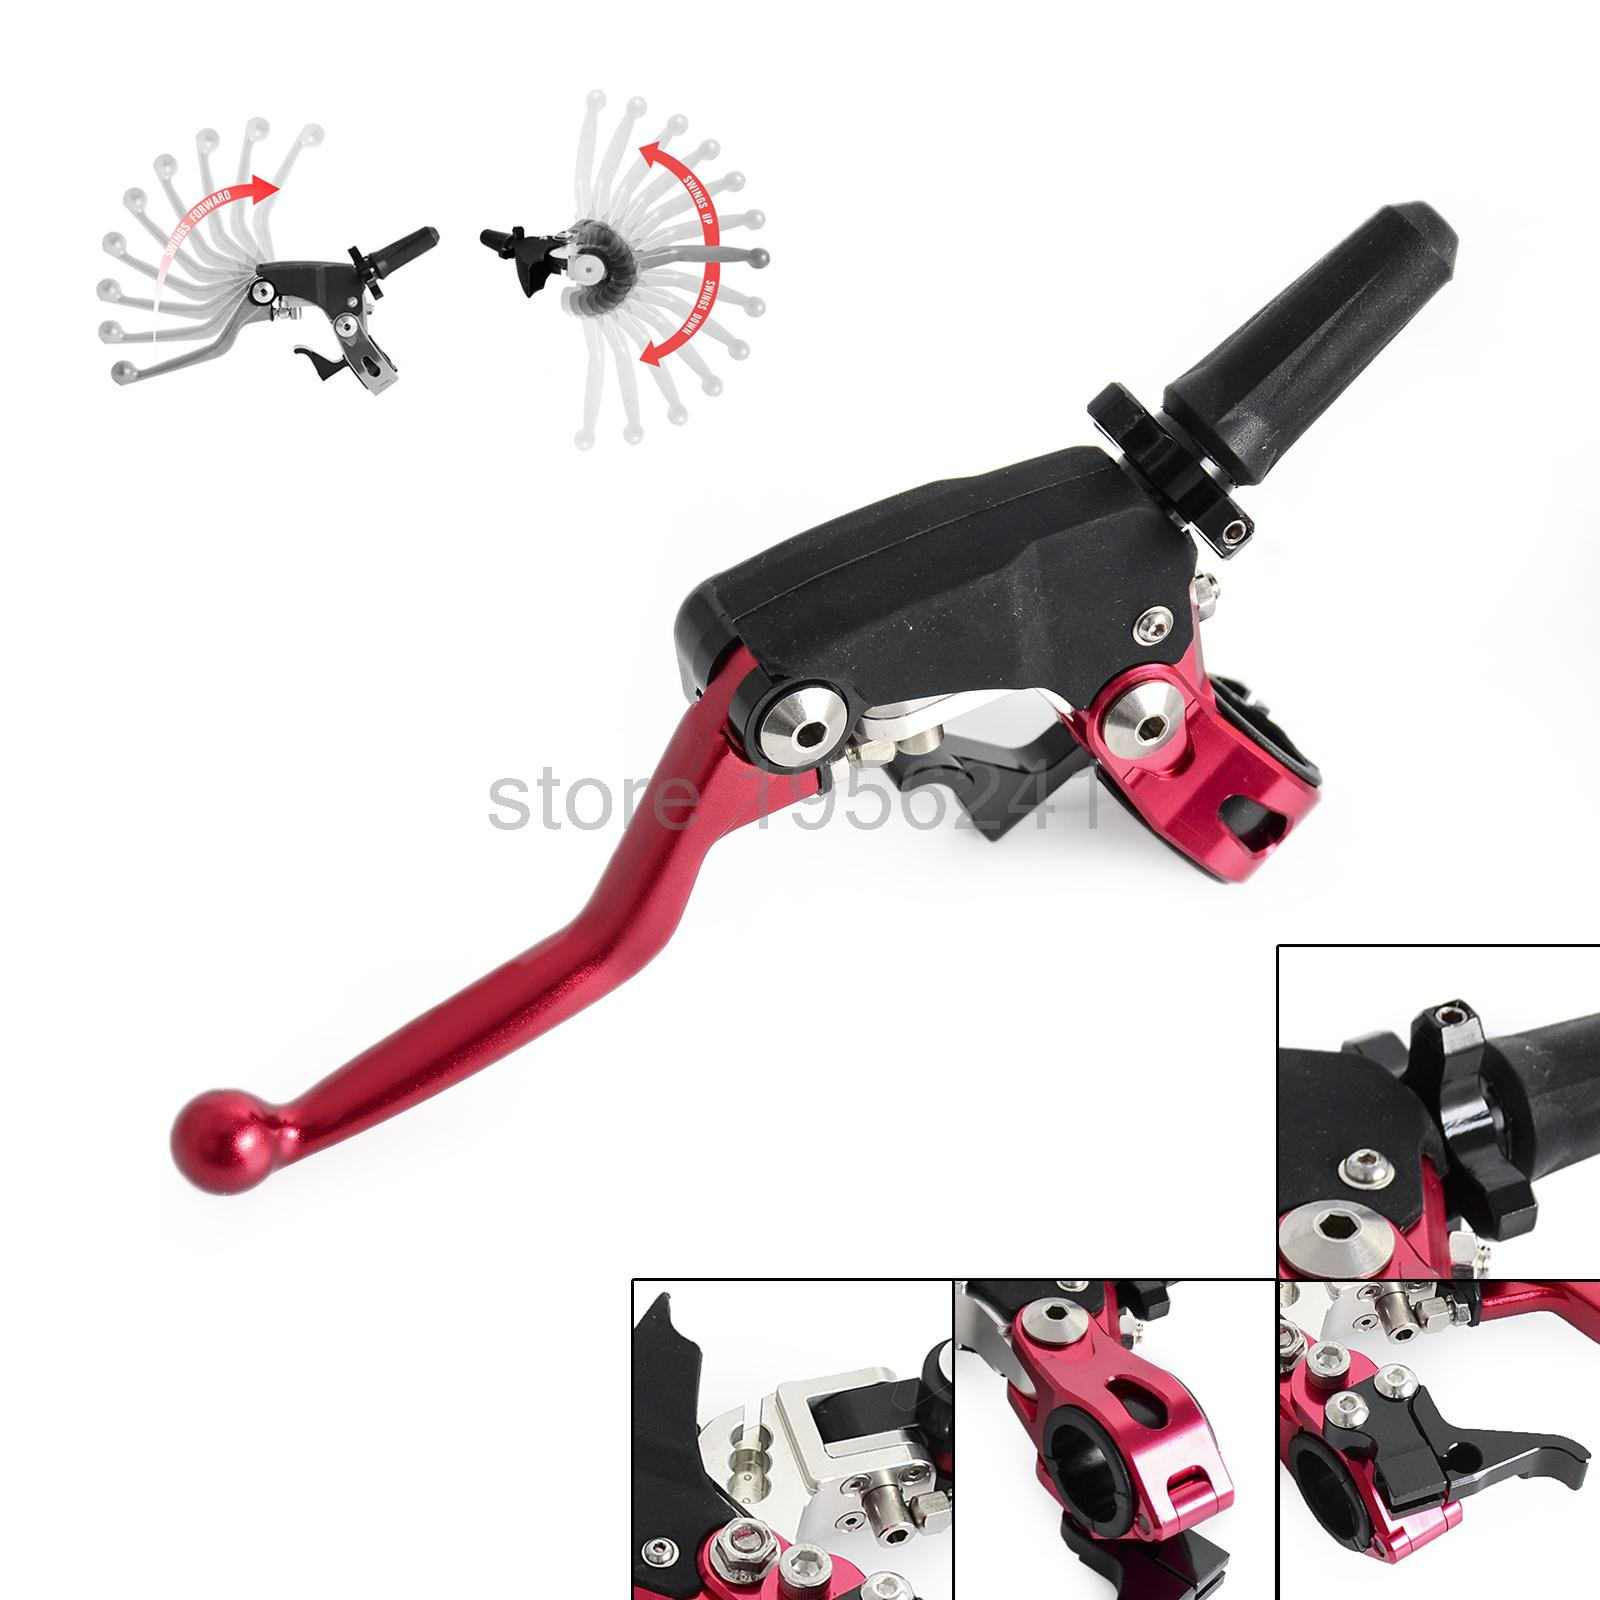 Forged Dirt Bikes Folding Clutch Lever Assembly Perch w/ Hot Start Lever For Honda CR CRF XL XR 125 150 250 400 450 650 generator avr r230